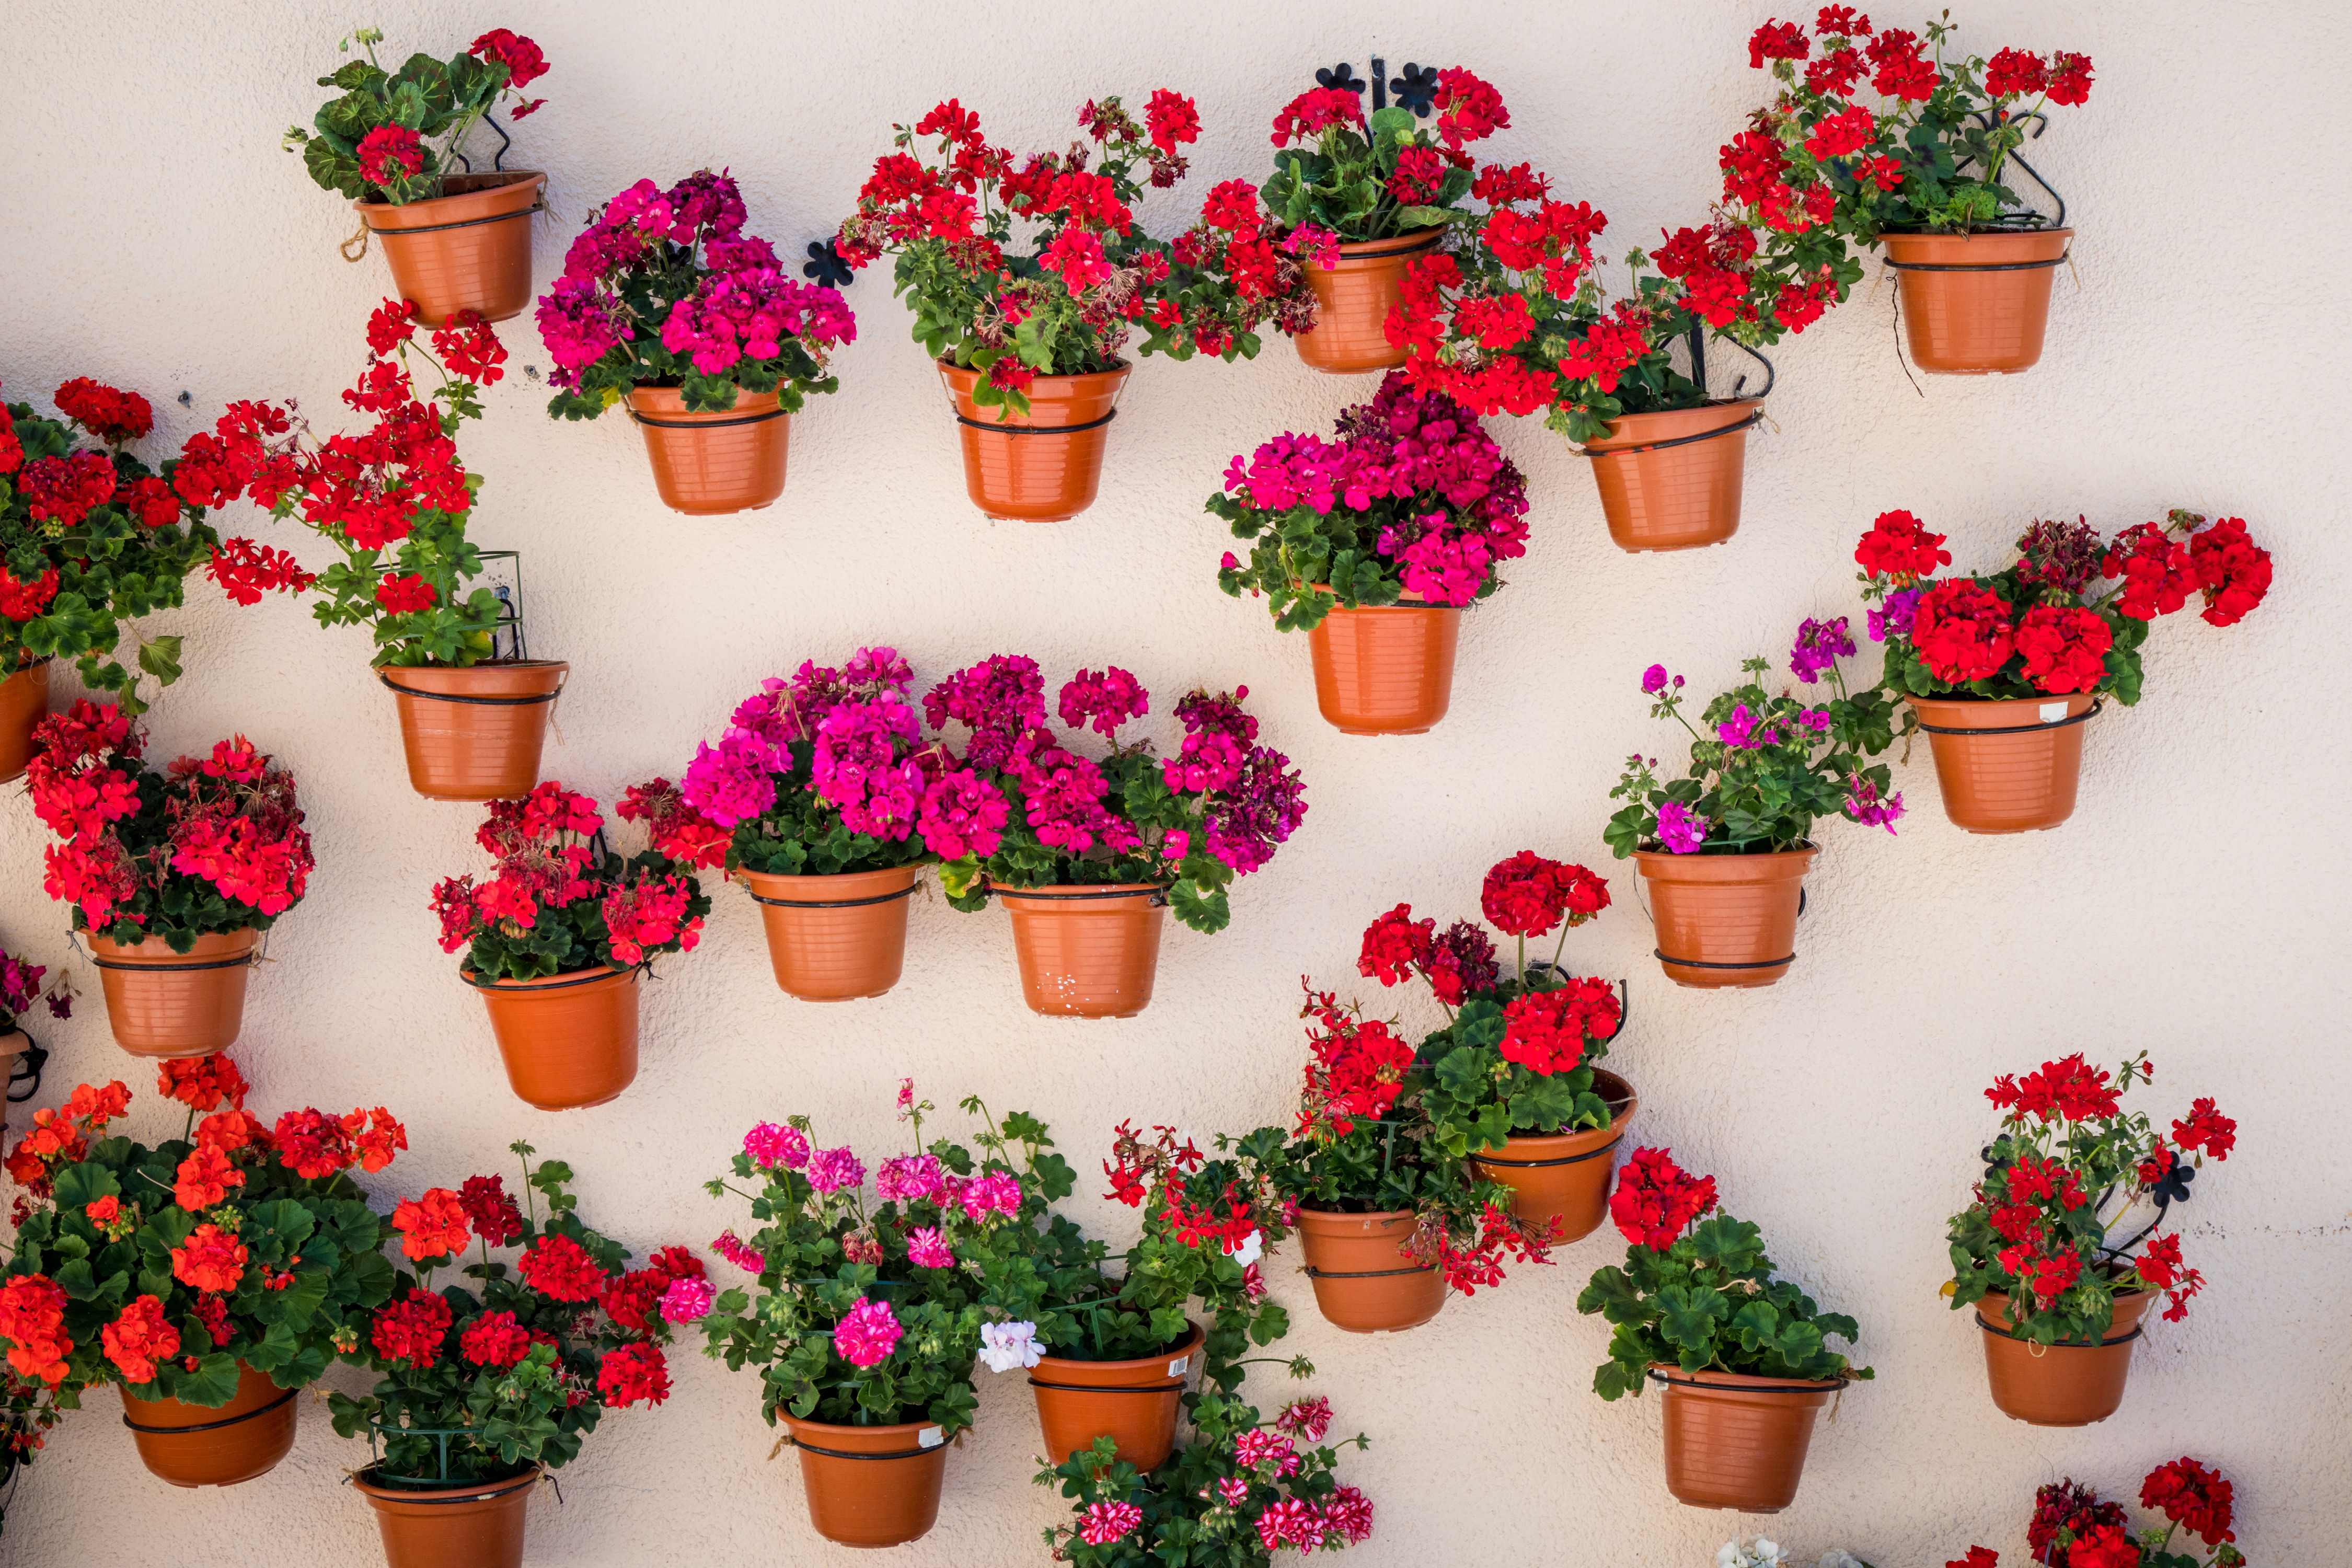 Here's Why You Should Put a Coffee Filter in Each of Your Flower Pots